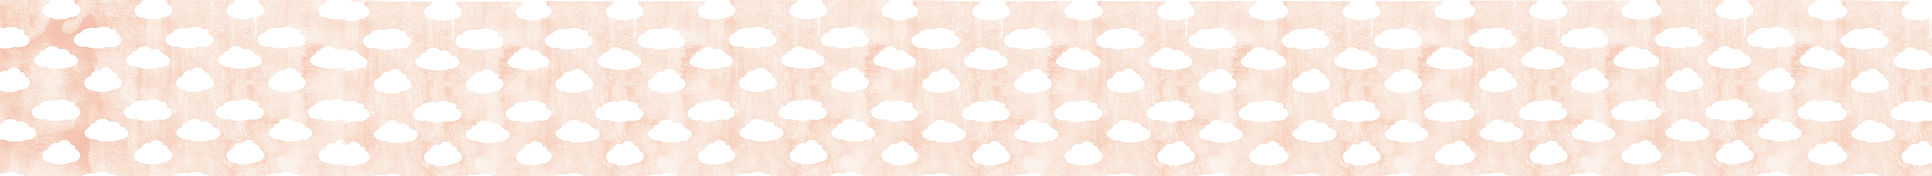 Blush Clouds BGD Long.jpg